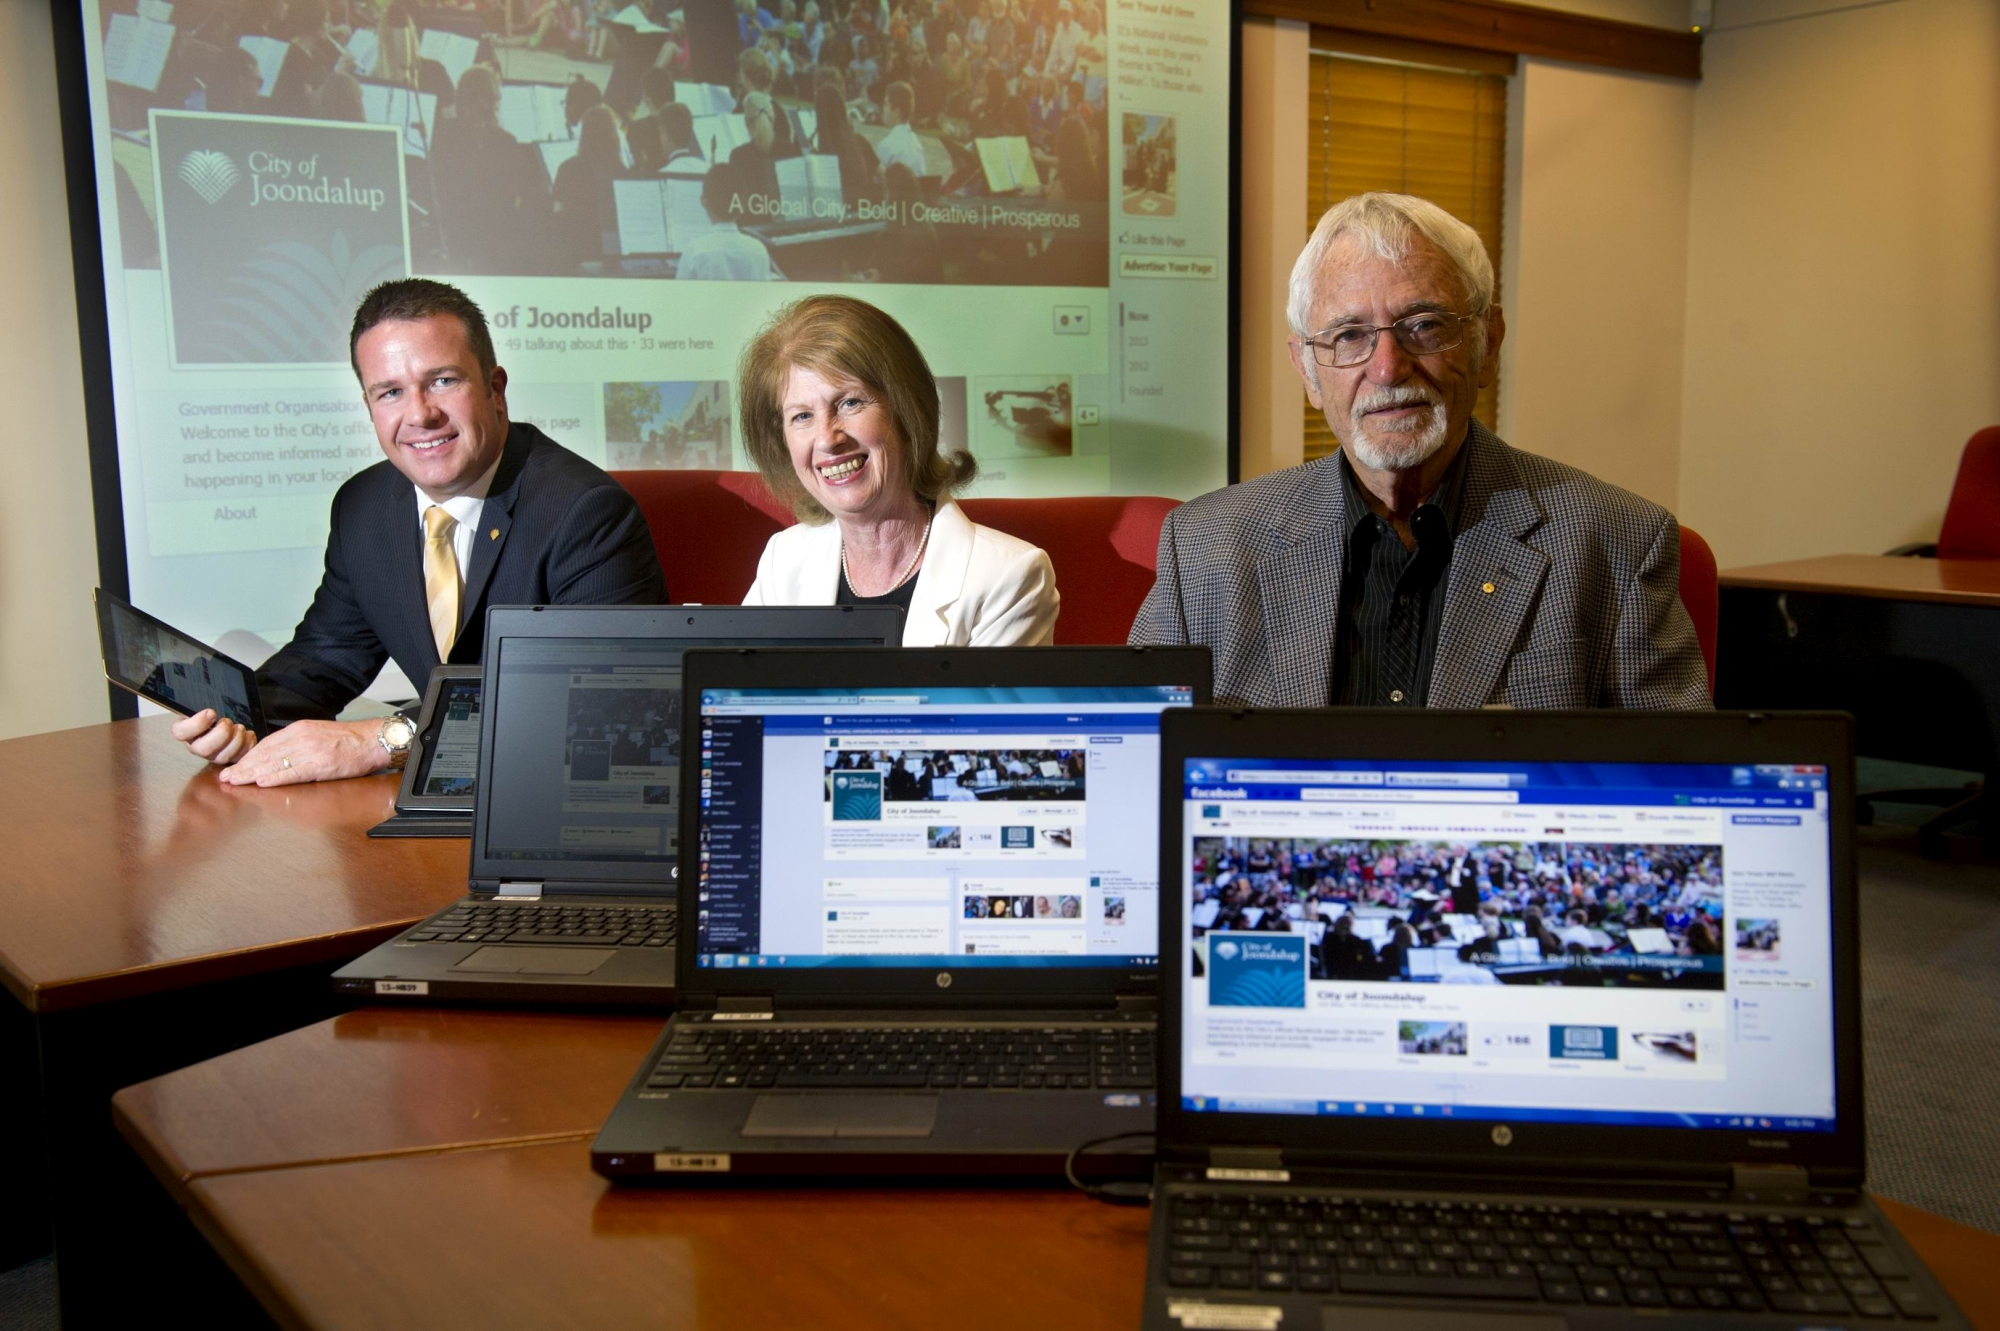 Wanneroo Times cofounders Bernice and Bill Marwick (right) join Mayor Troy Pickard for the launch of the City of Joondalup Facebook page. Picture: Emma Reeves d400940